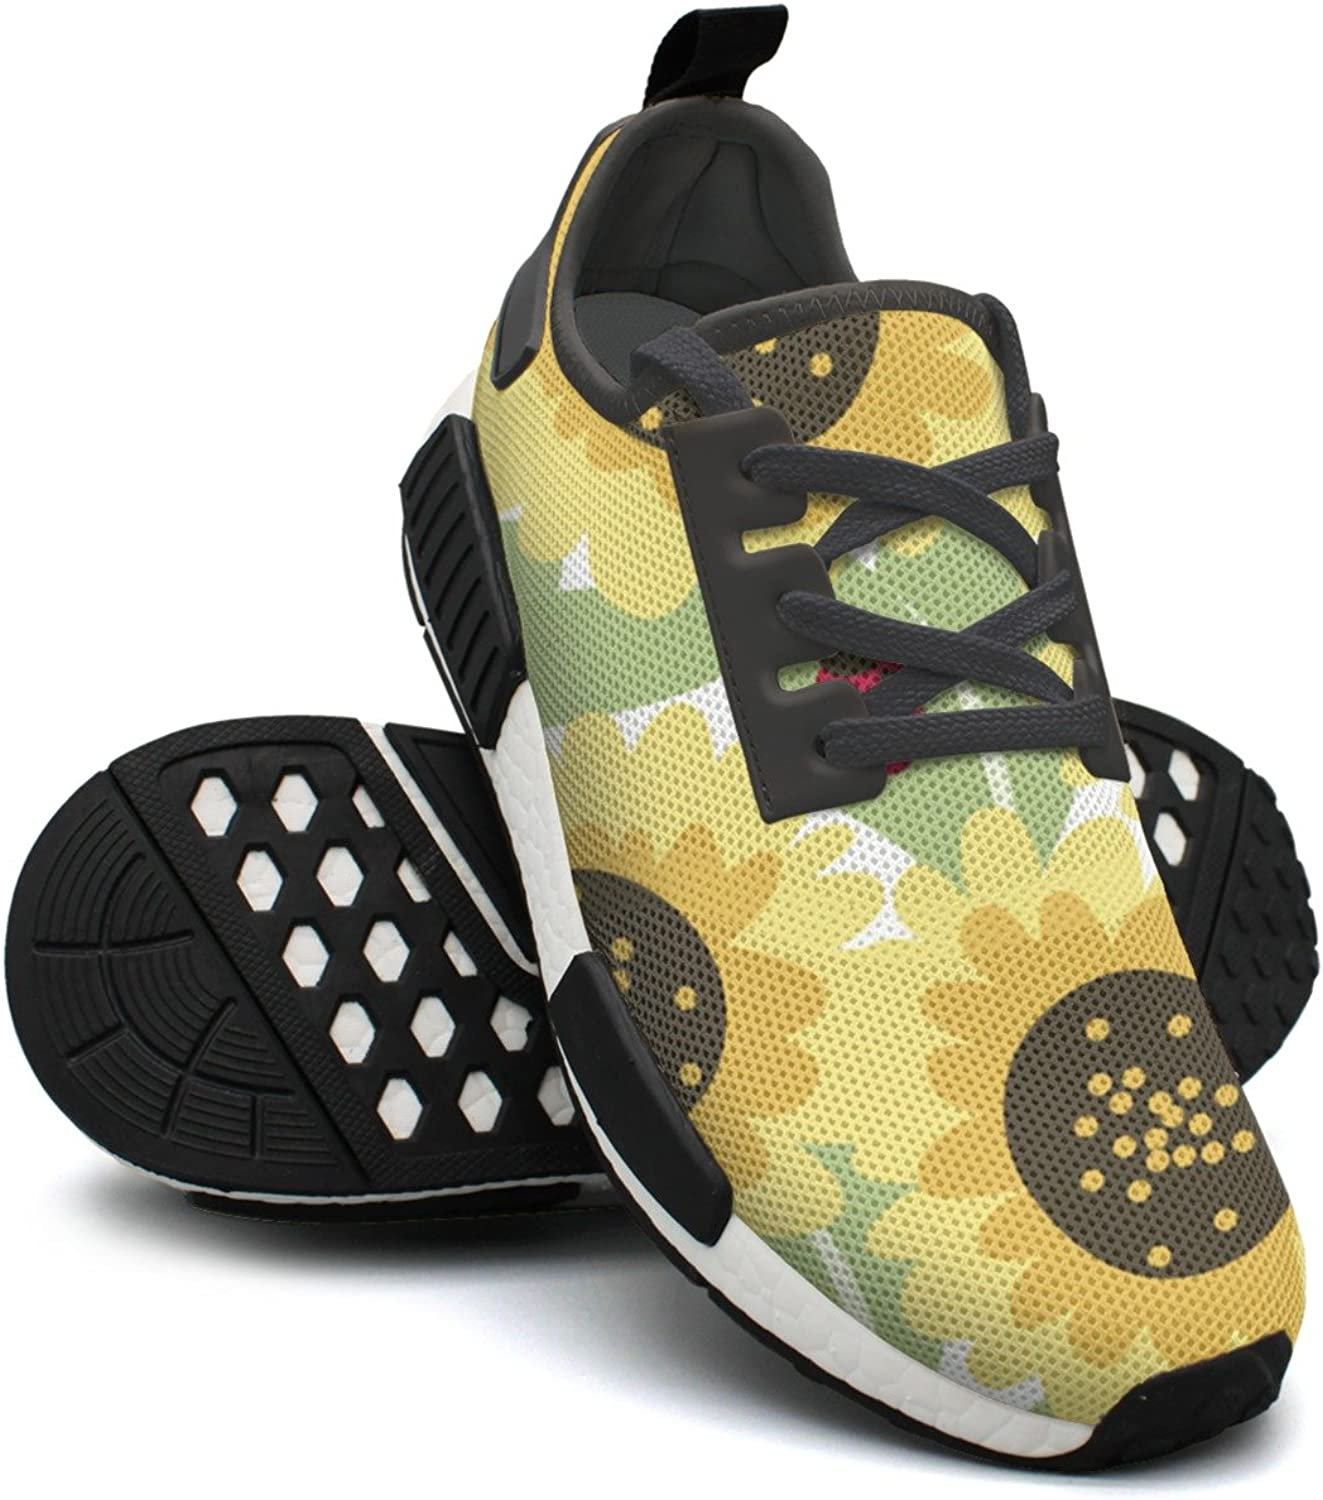 Sunflower and Ladybugs Women's Casual Lightweight Basketball Sneakers Gym Outdoor Running shoes